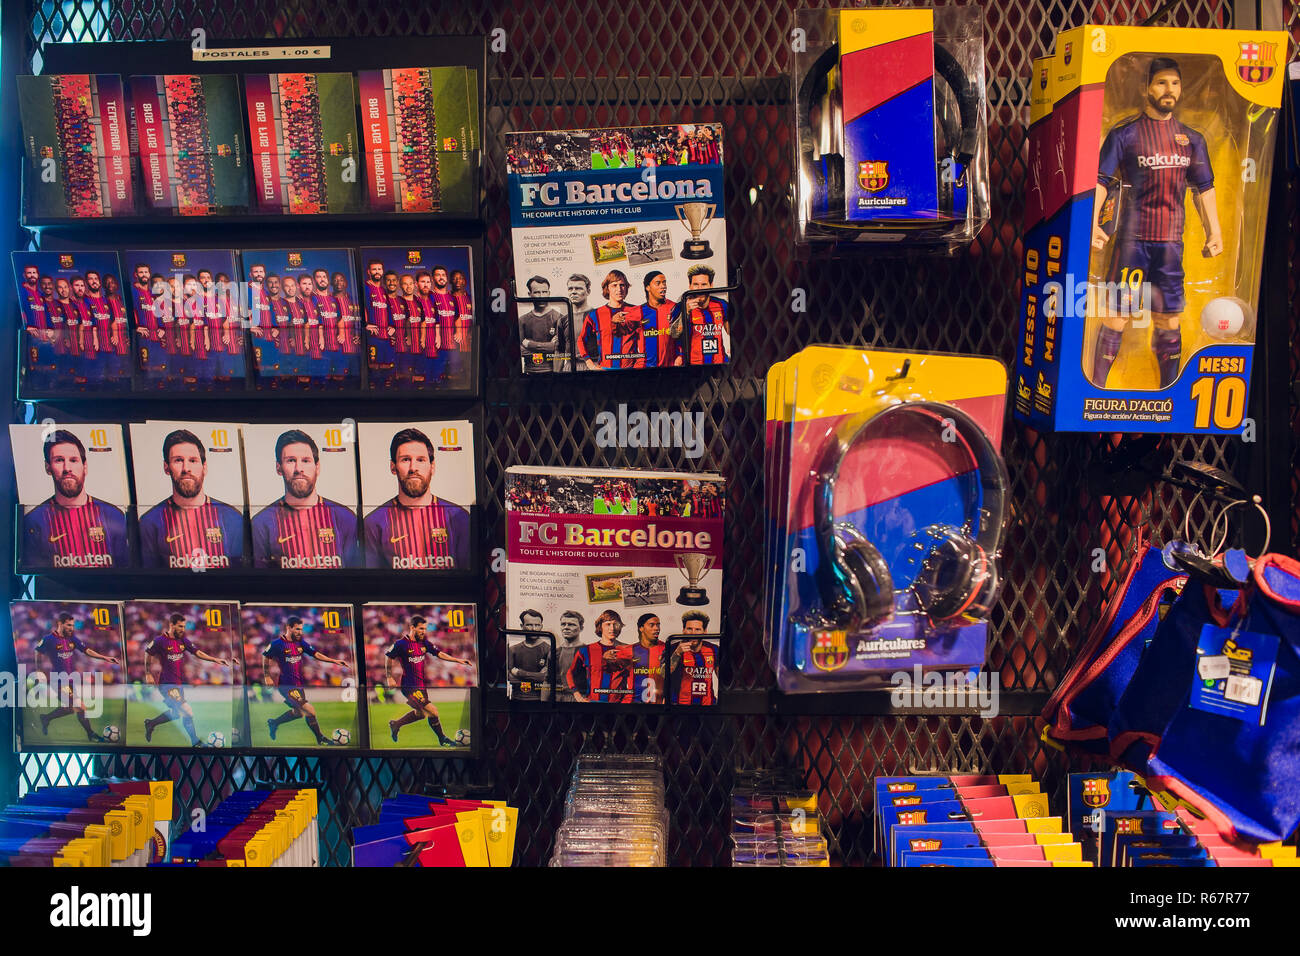 BARCELONA, SPAIN - AUGUST 10, 2018: Entrance the FCB Futbol Club Barcelona official store located in Passeig de Gracia, where architectural jewels stand side by side with most prestigious shops. - Stock Image